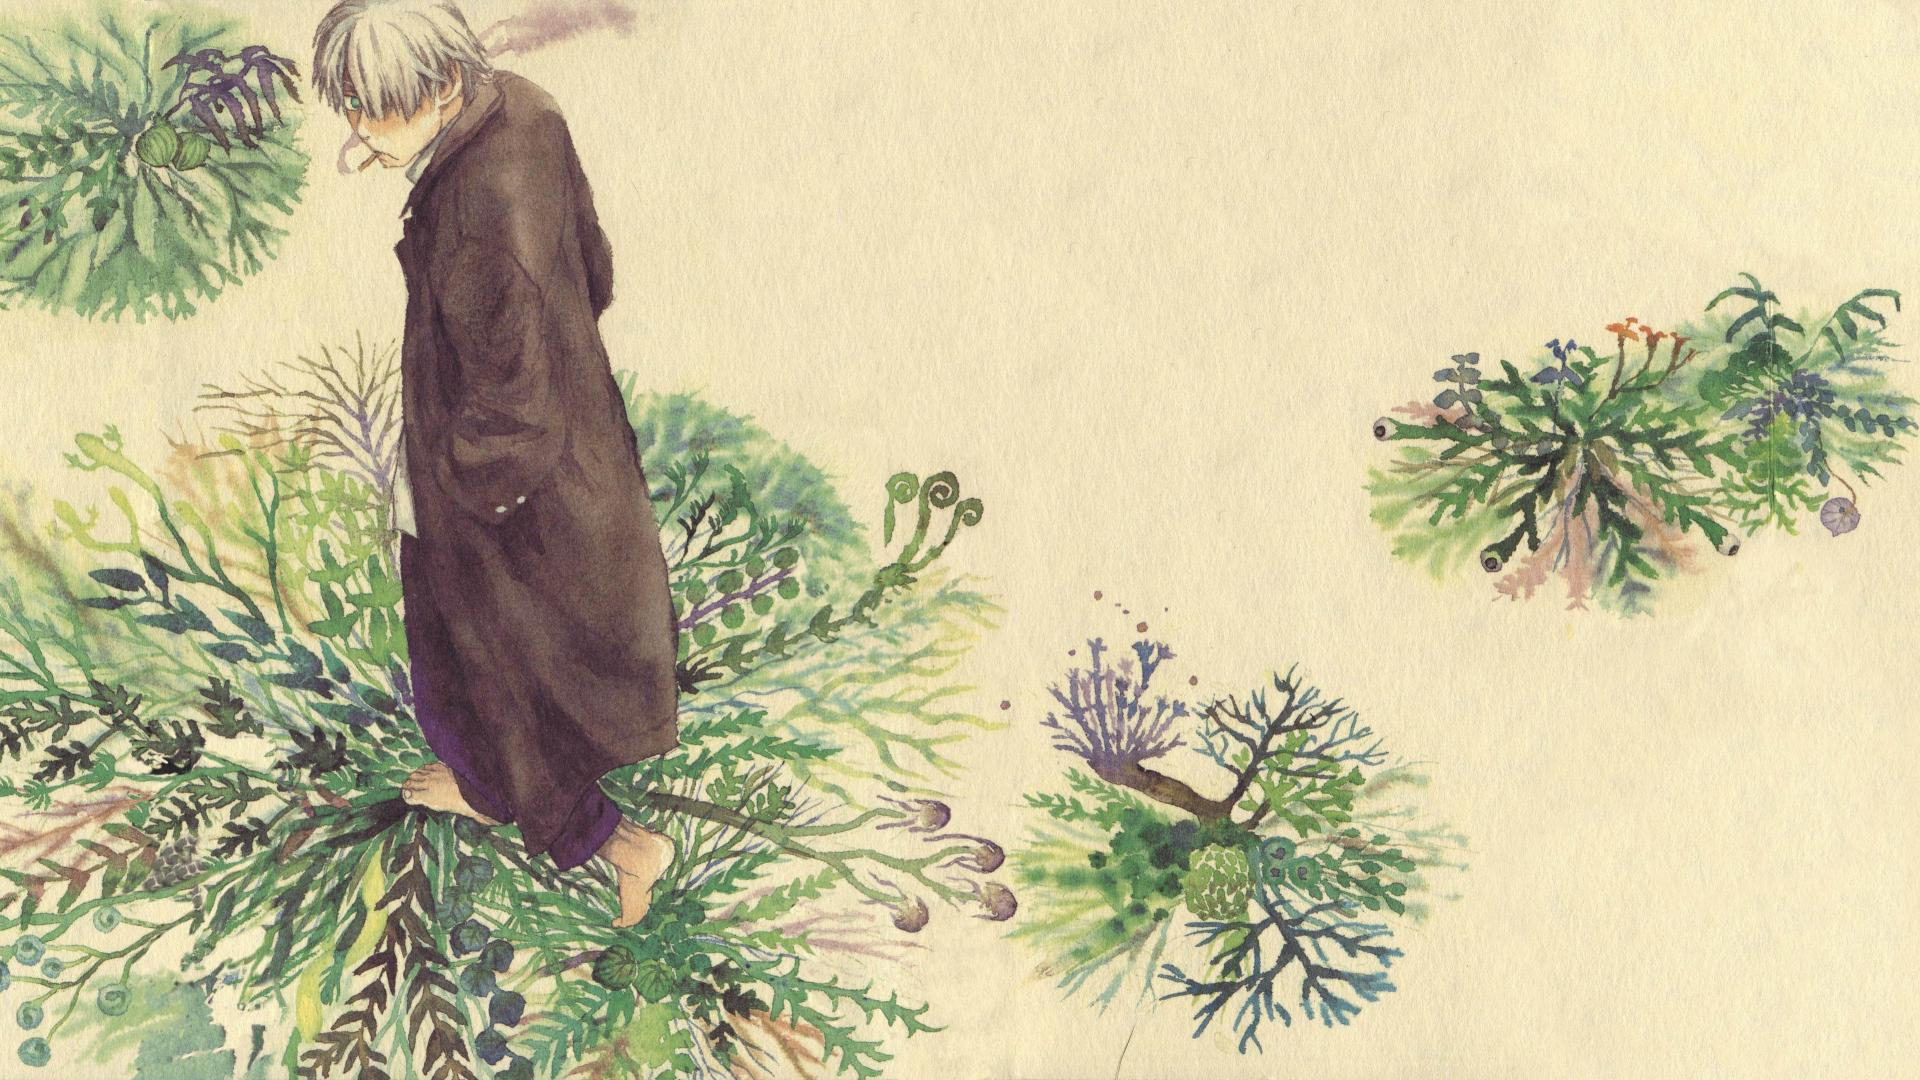 Mushishi ginko wallpaper 65522 1920x1080